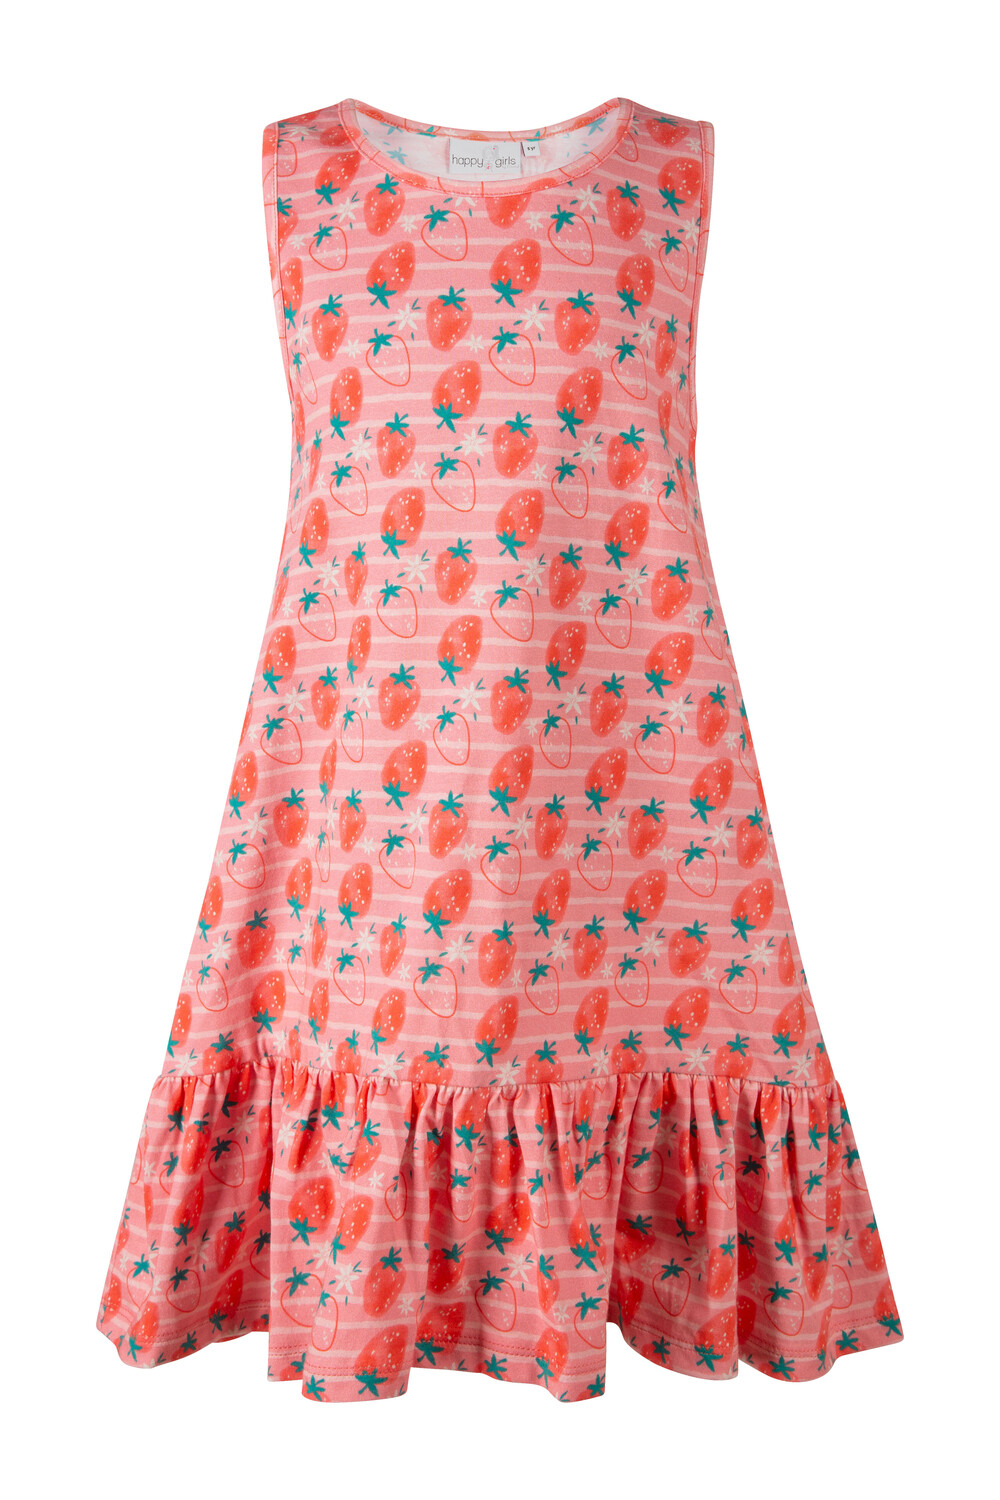 Kleid 116 flamingo happy girls by Eisend